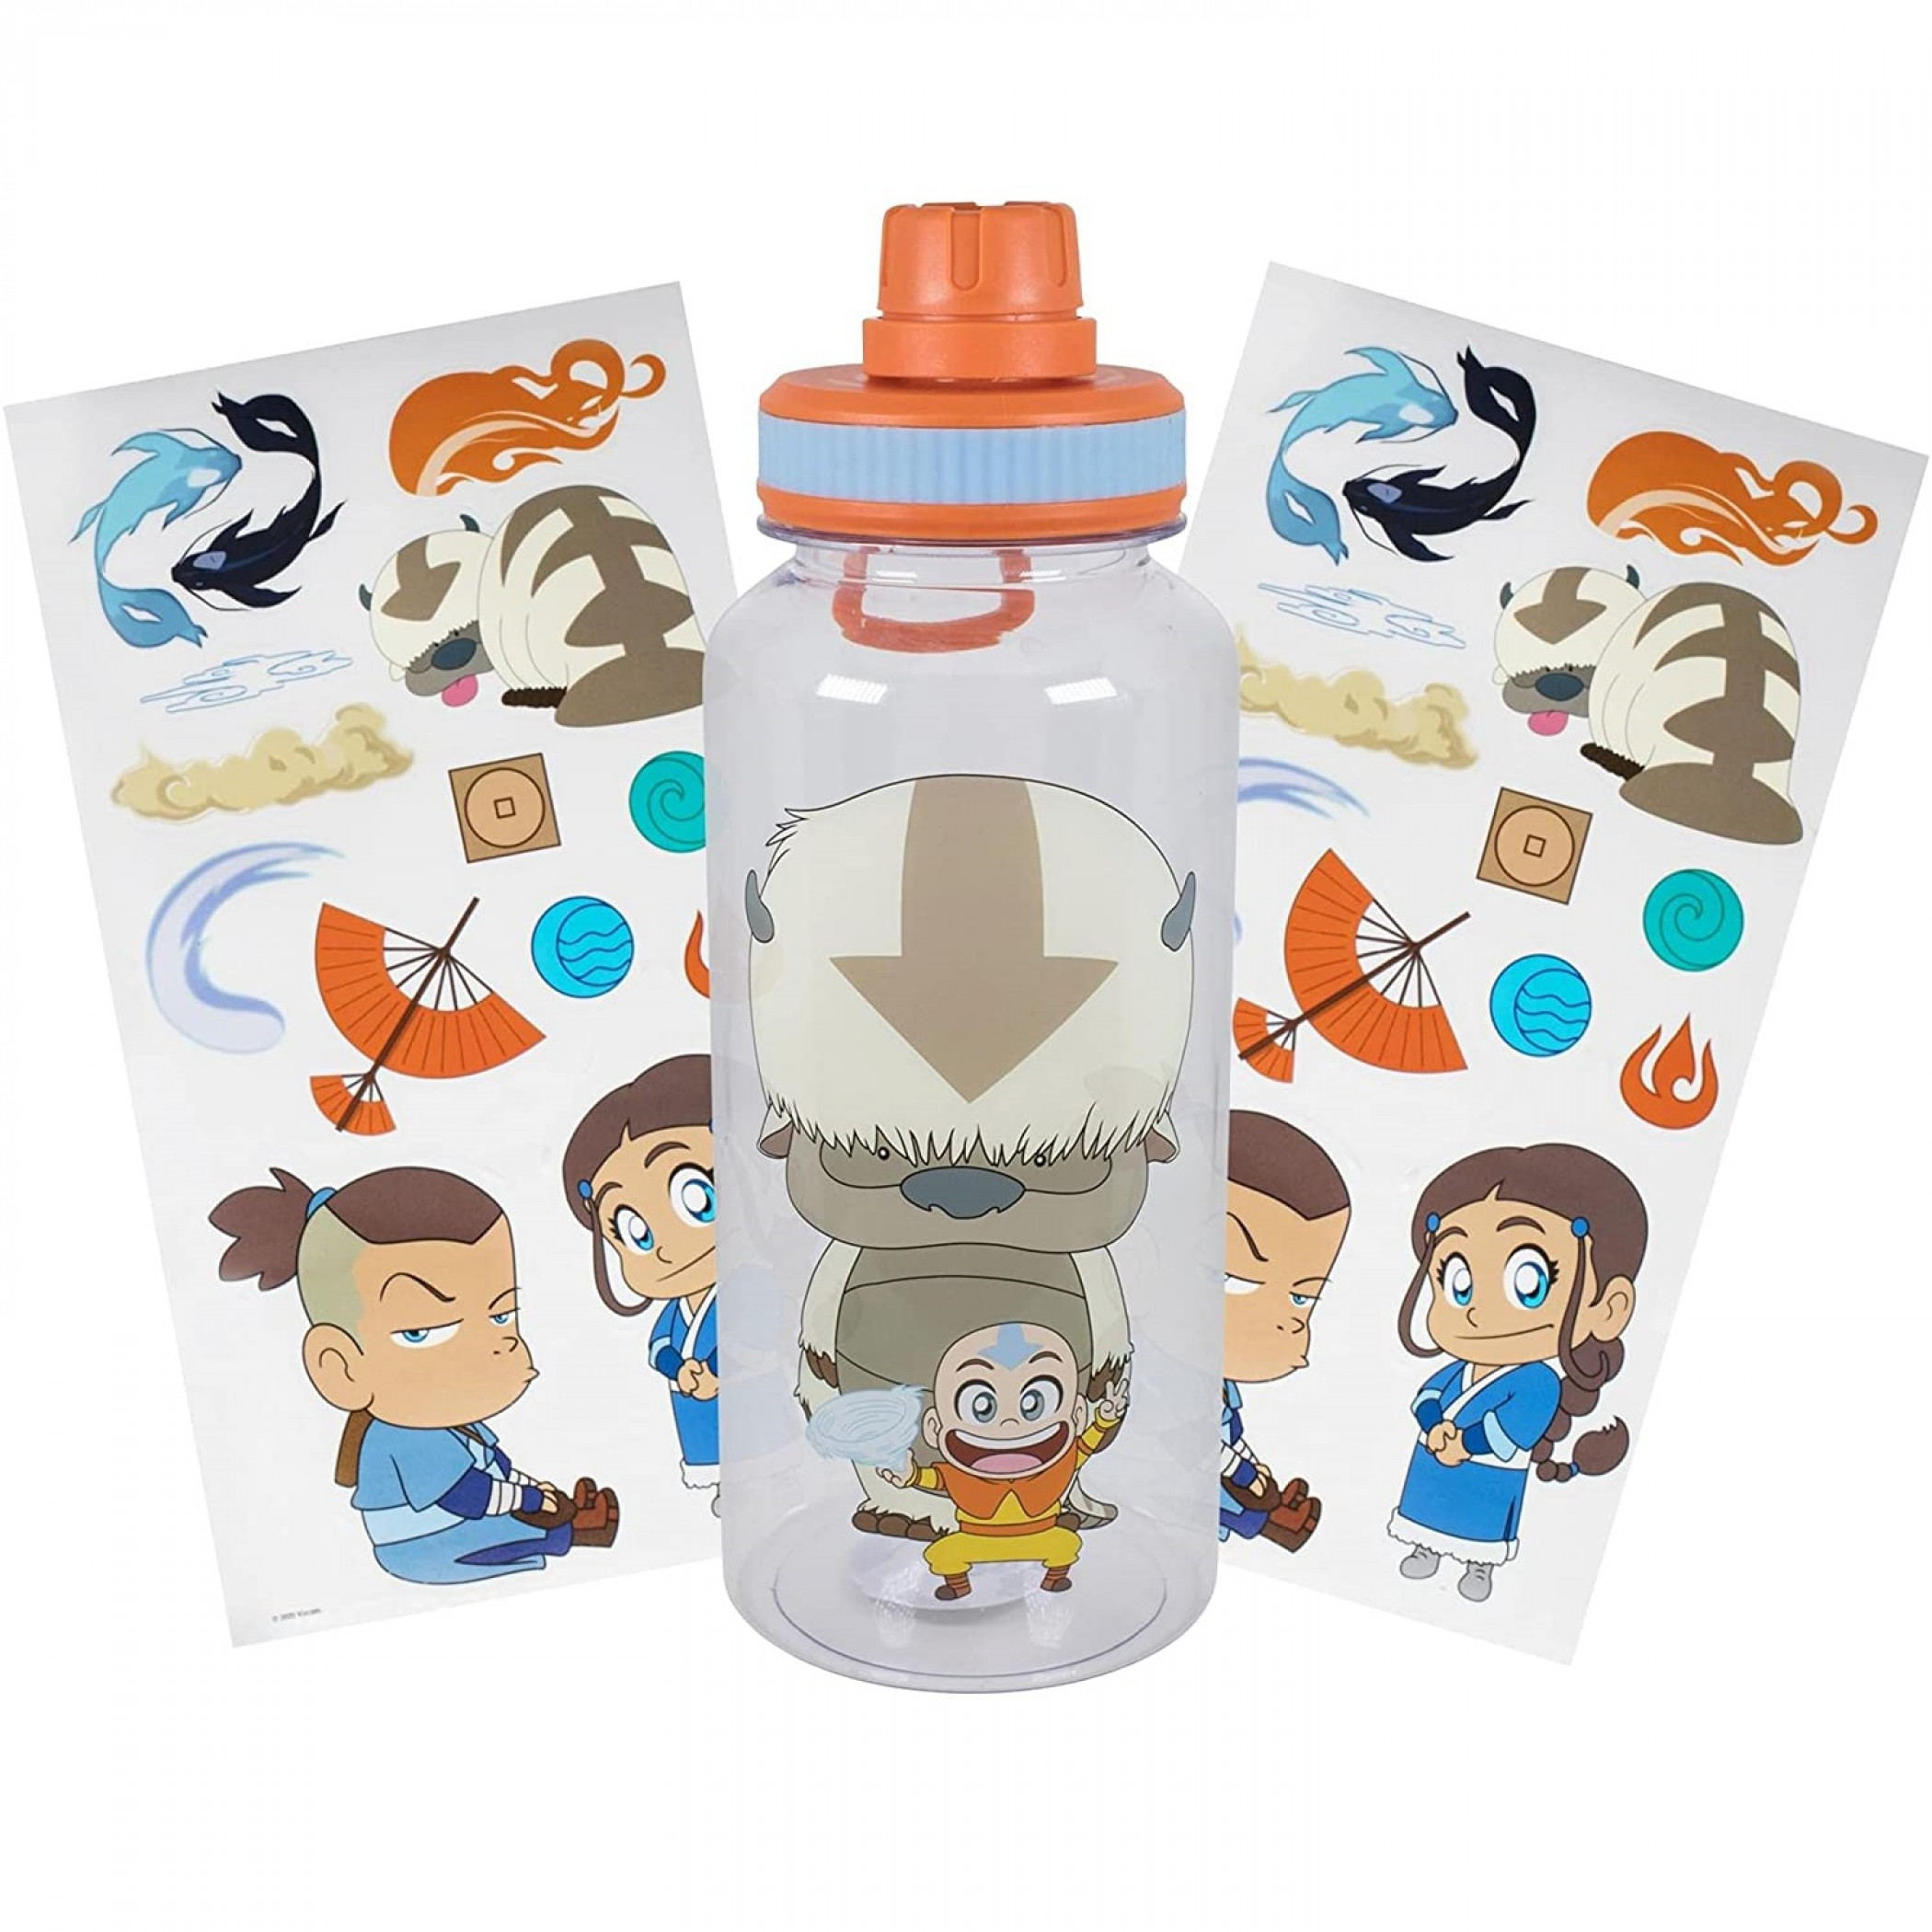 Avatar: The Last Airbender Chibi Icons 32oz Water Bottle with Stickers